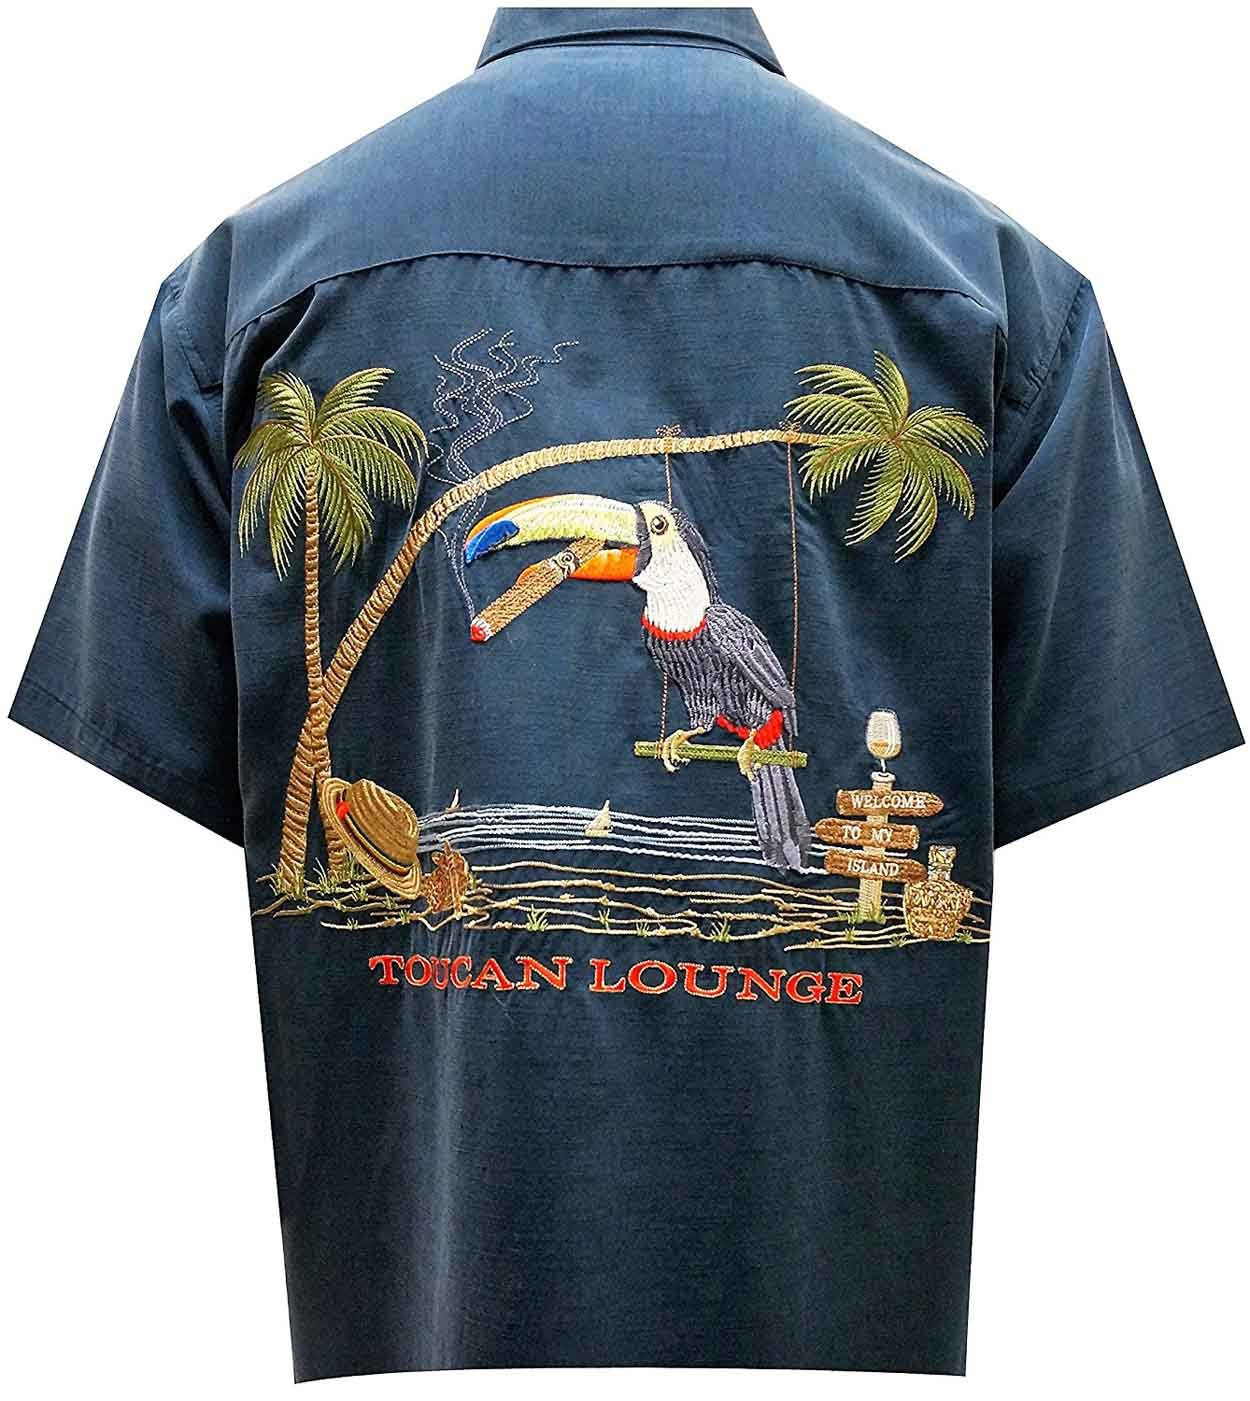 Bamboo Cay Mens Toucan Lounge Button Front Embroidered Navy Blue Camp Shirt by Bamboo Cay